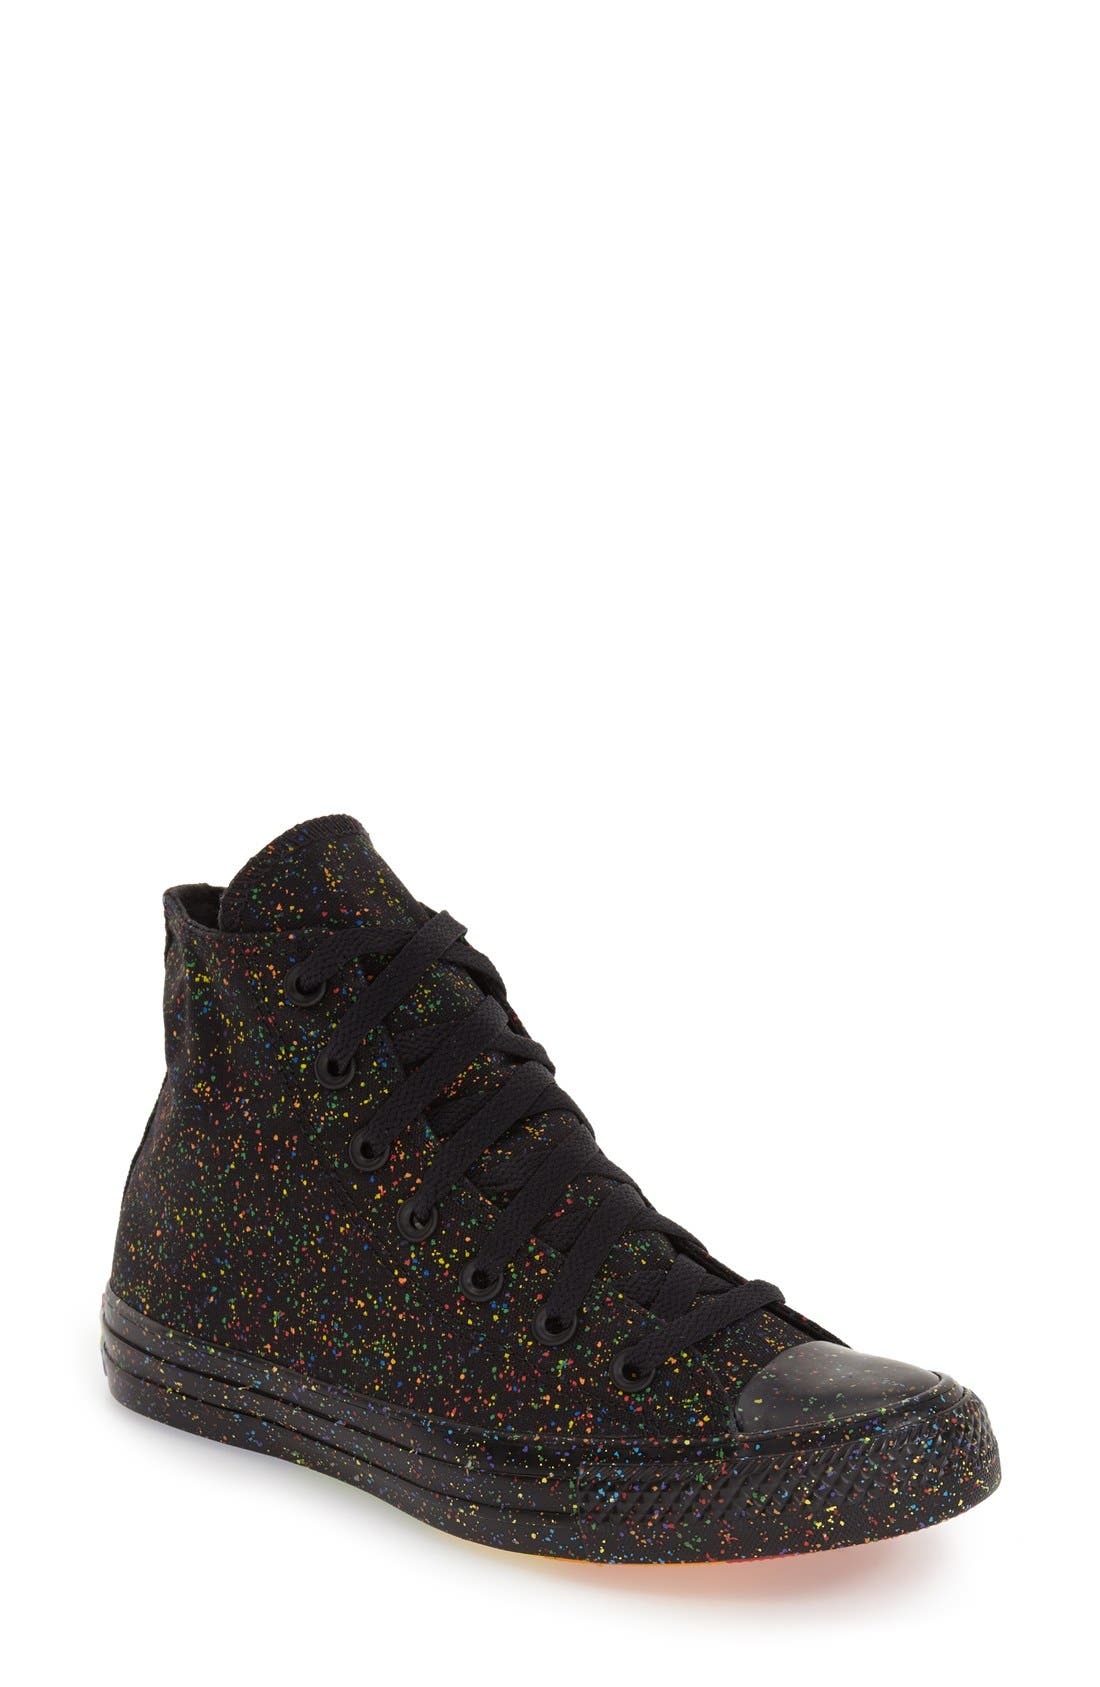 Alternate Image 1 Selected - Converse Chuck Taylor® All Star® 'Pride' High Top Sneaker (Women)